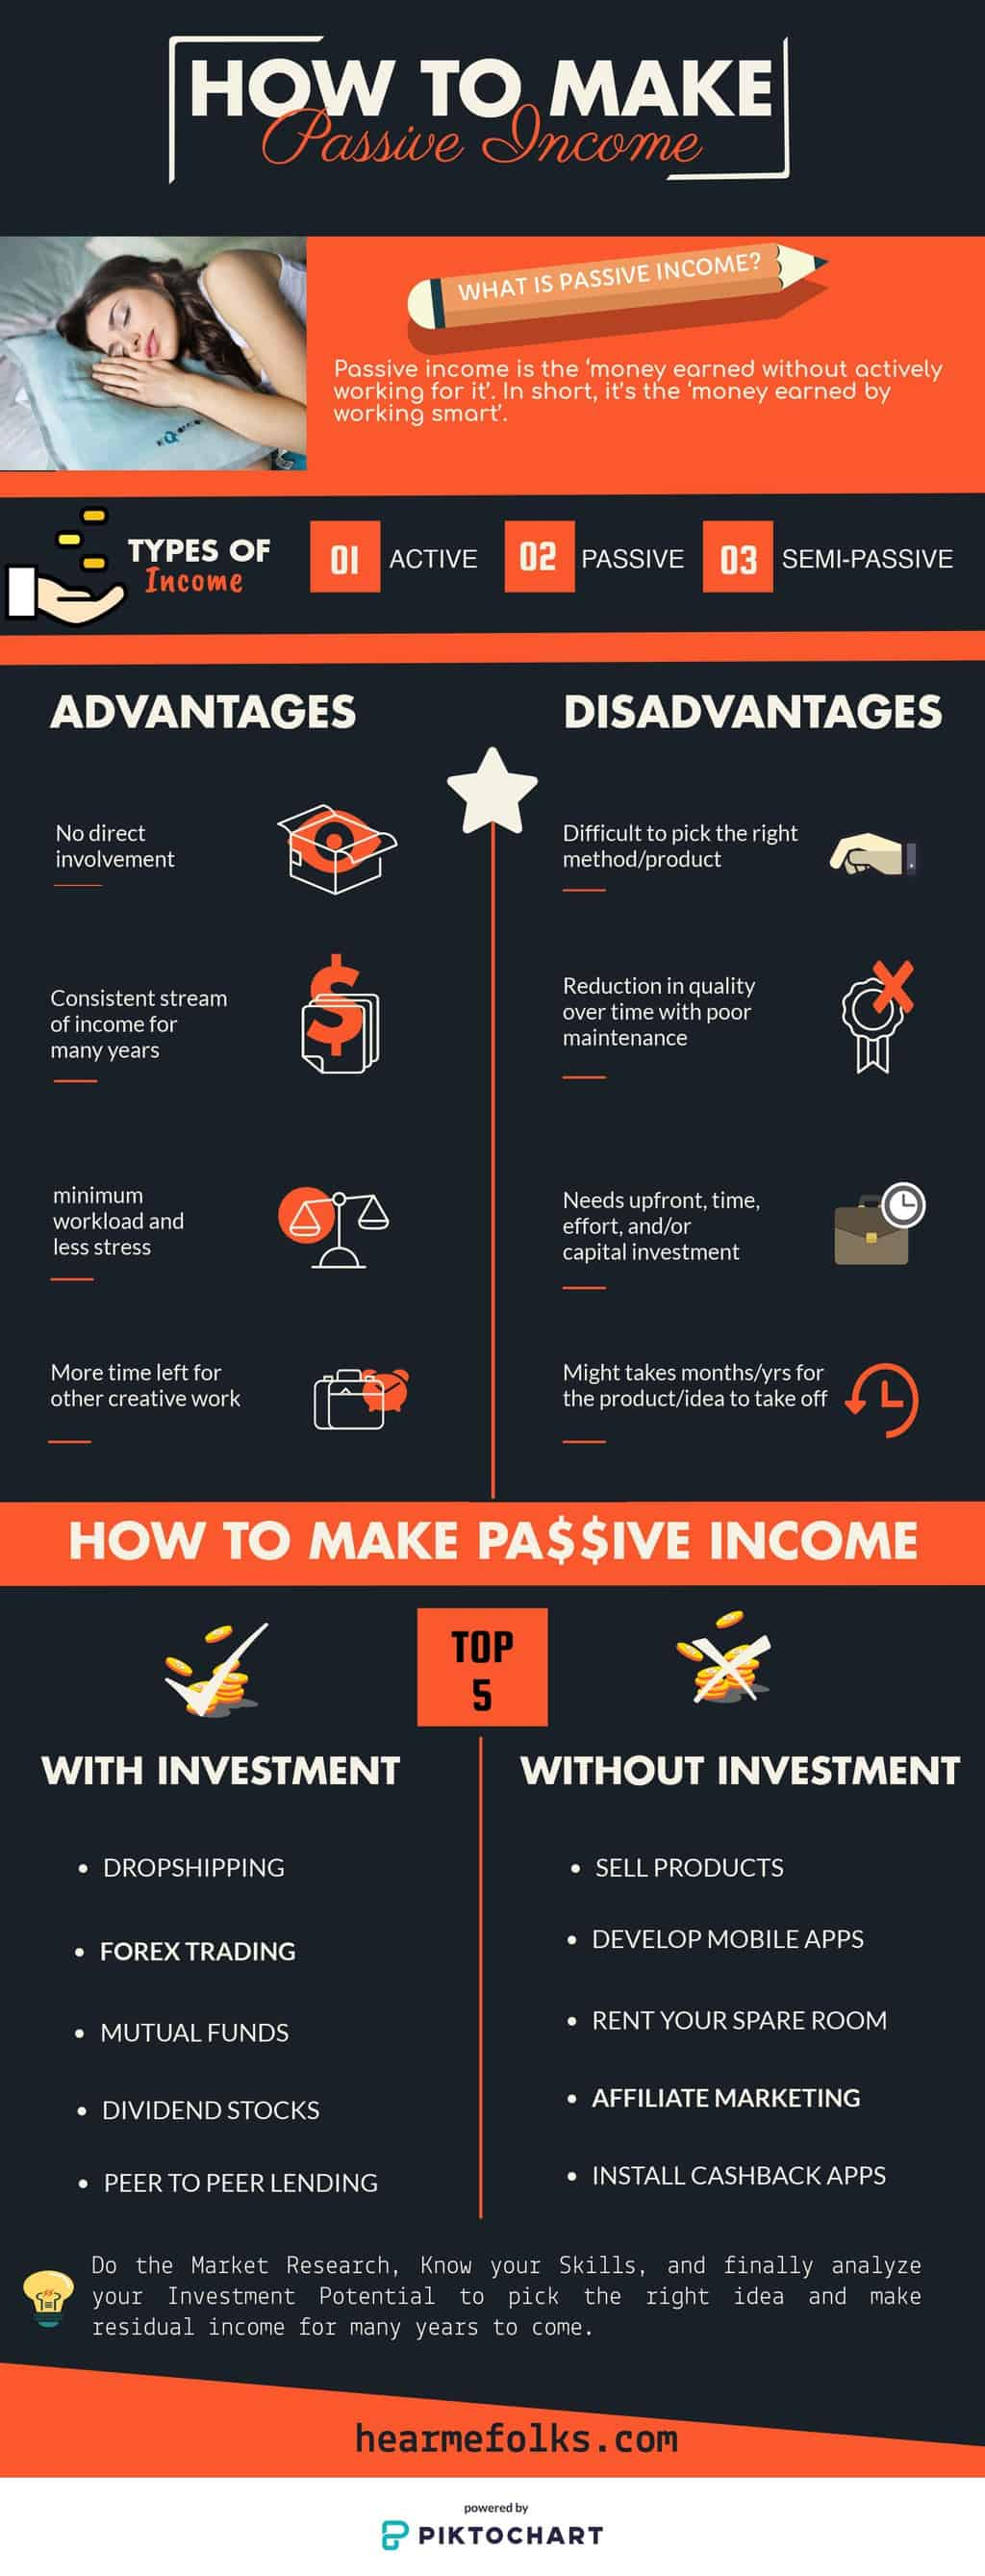 28 Epic Passive Income Ideas Worth 100k Per Year Hearmefolks